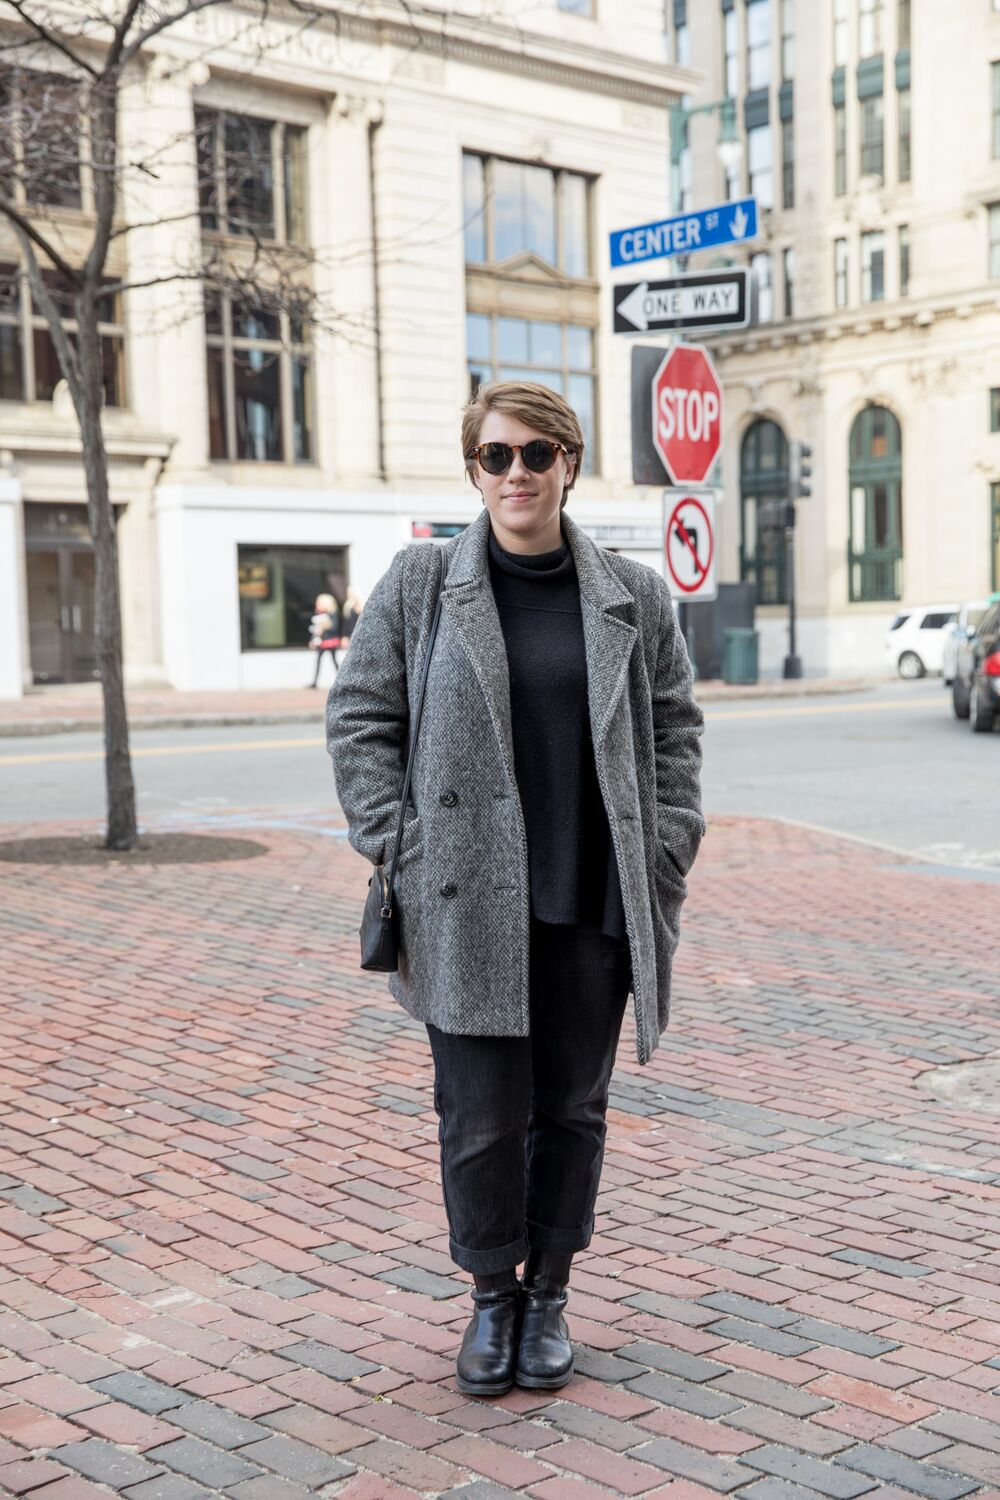 MIEKALA CANGELOSI - Recent purchase: My wool coat [pictured]Favorite local shop: Moody LordsNew or used: UsedDescribe your aesthetic:Minimalist with twist of funk